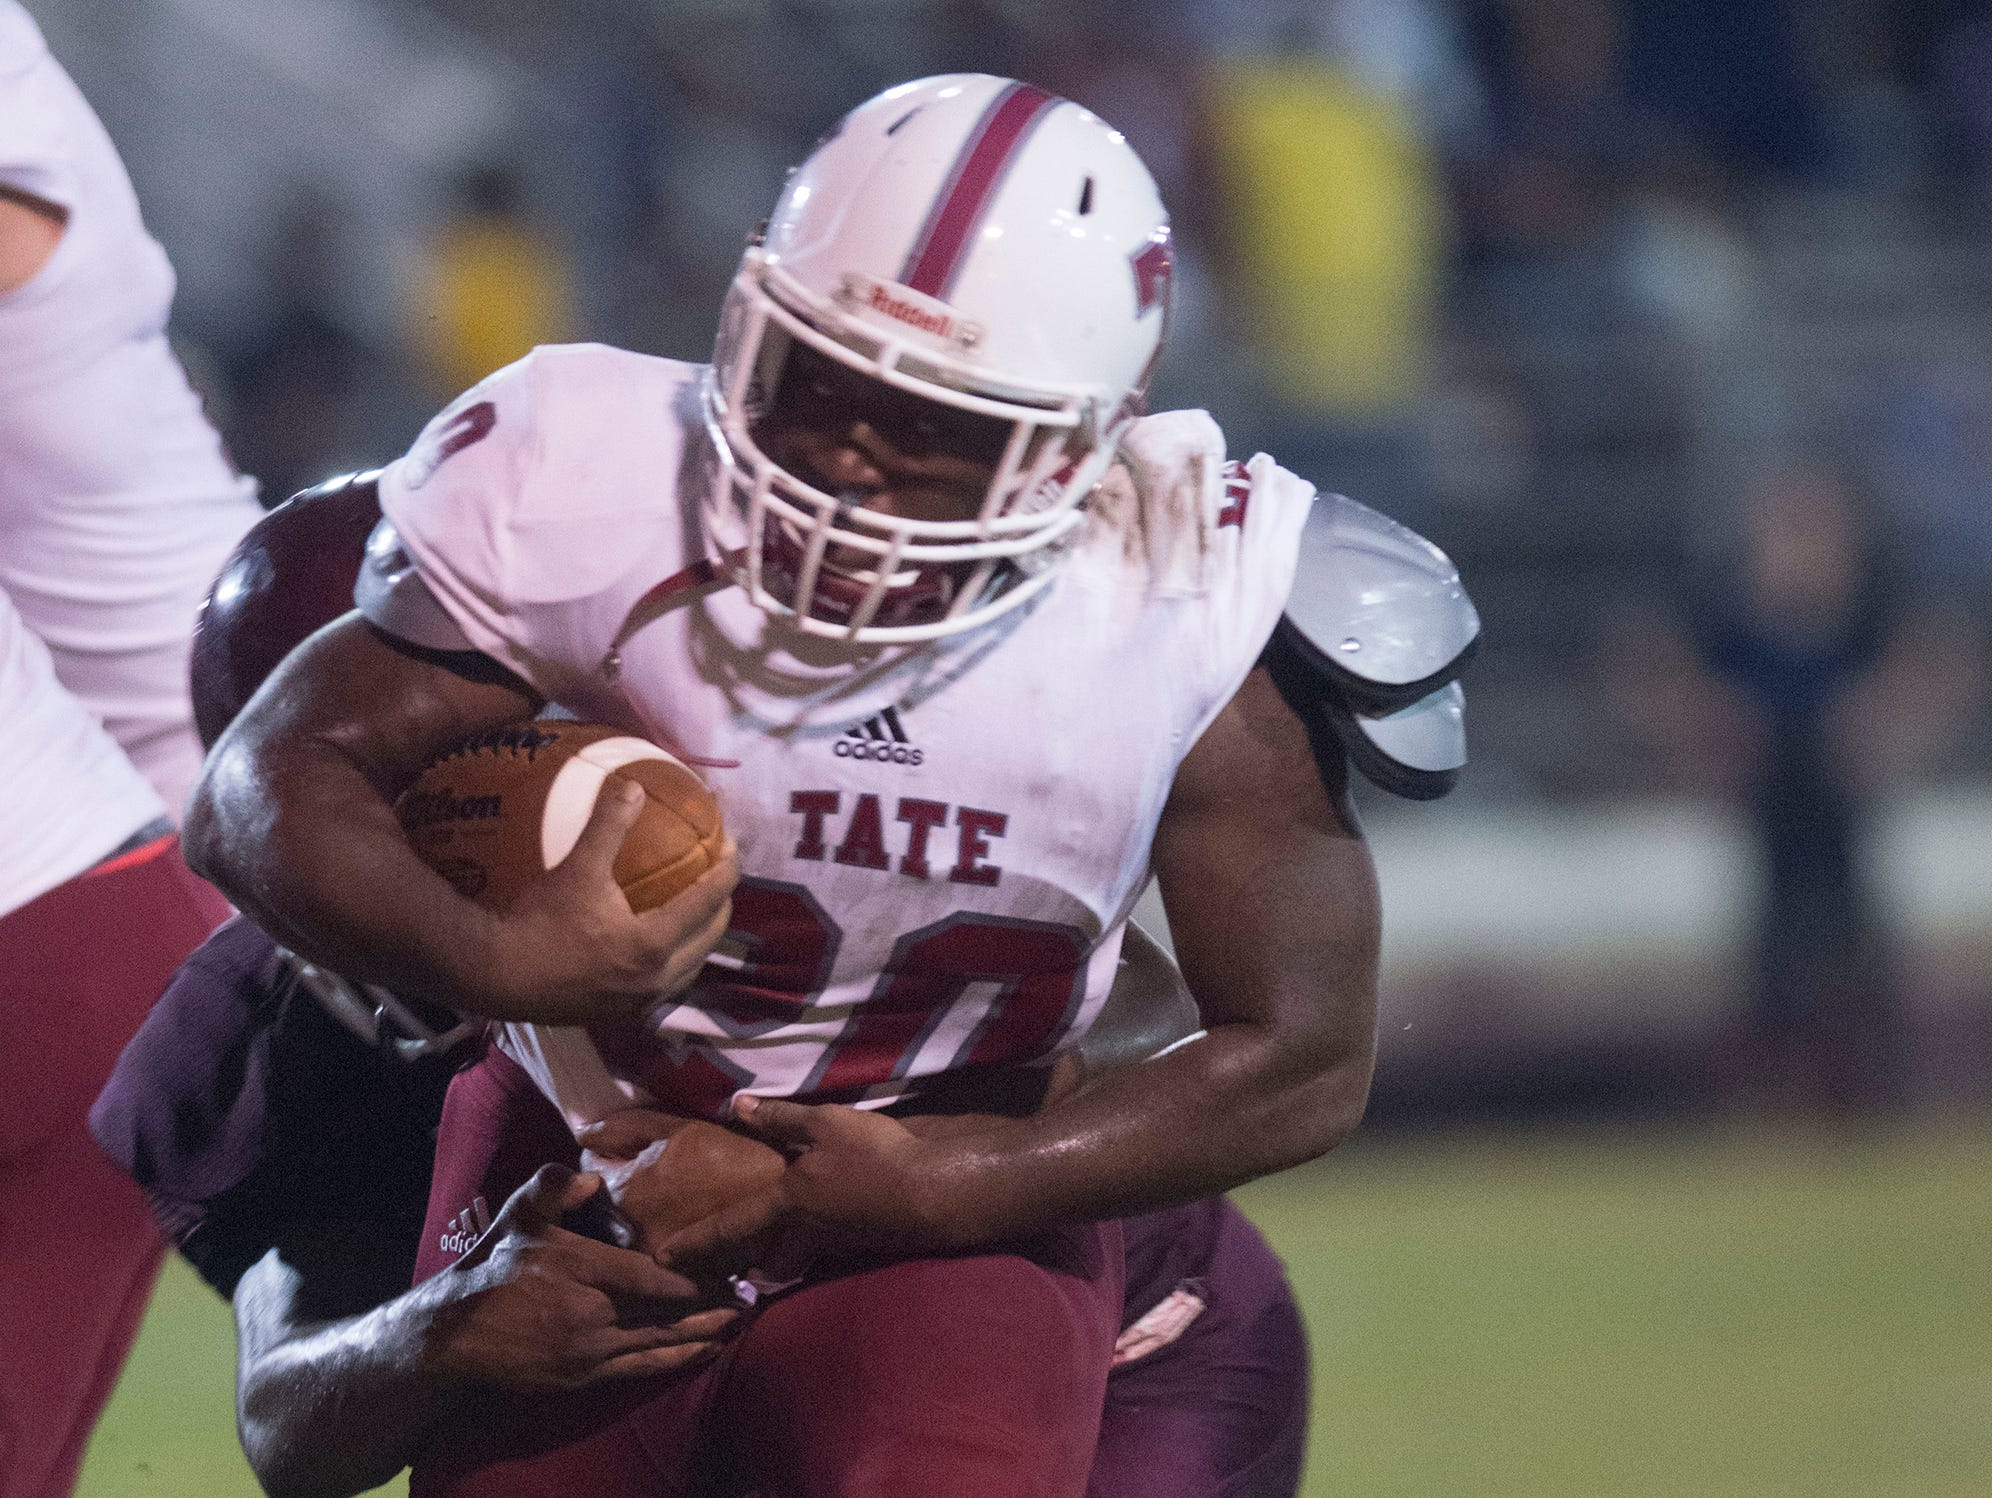 Tate High School running back, Corey Moorer, (No.20) gets wrapped up with a Pensacola High School defender during Friday night's preseason game at PHS.